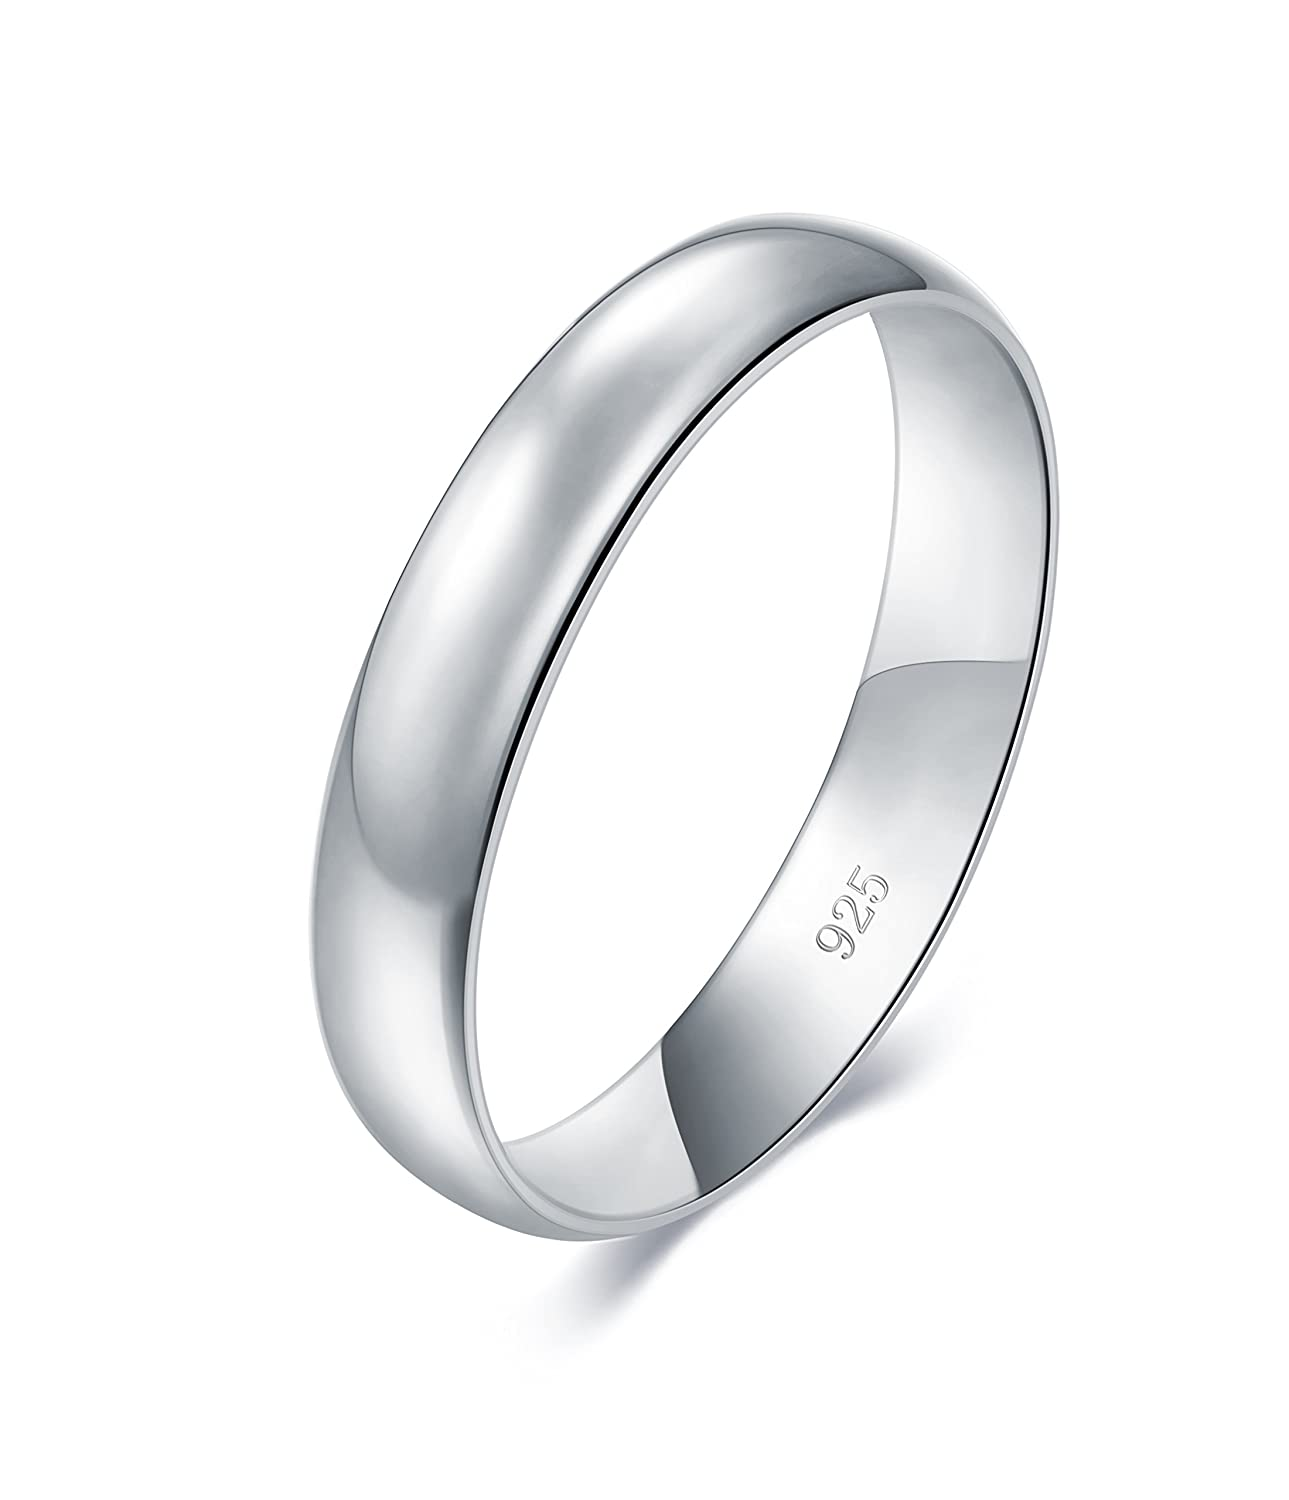 BORUO 925 Sterling Silver Ring High Polish Plain Dome Tarnish Resistant Comfort Fit Wedding Band 4mm Ring BRC Creative Corp.